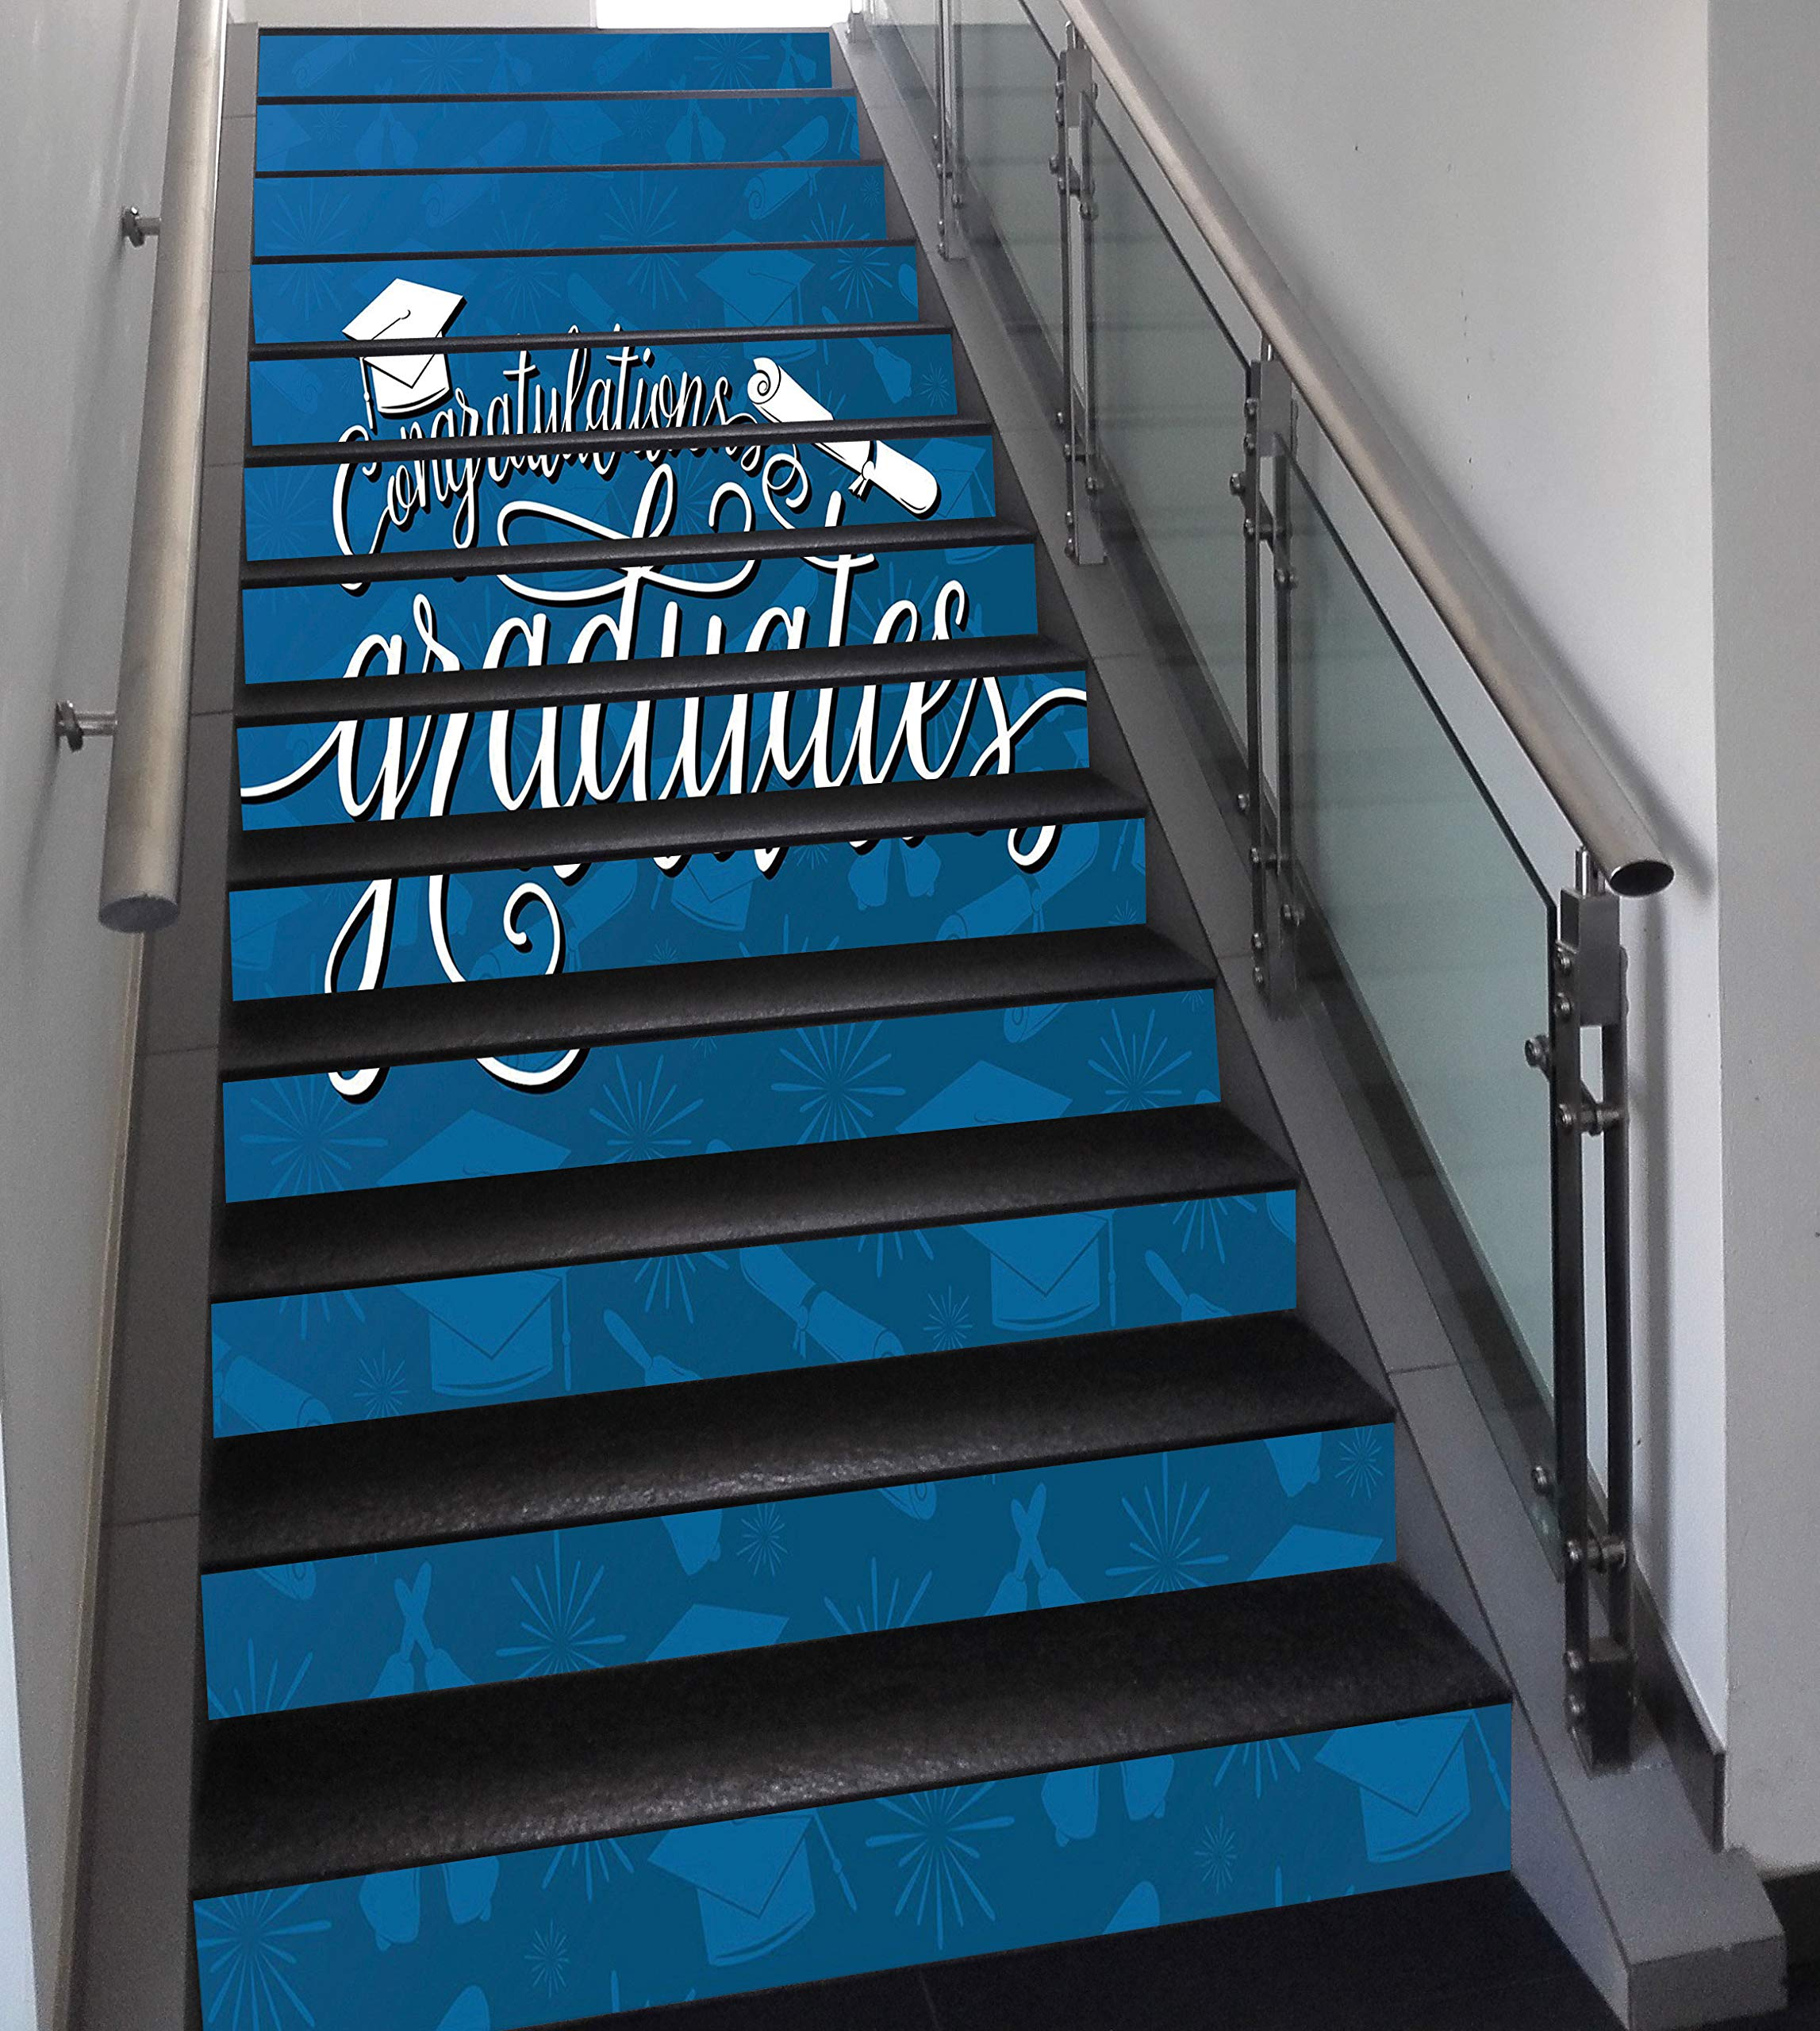 Stair Stickers Wall Stickers,13 PCS Self-adhesive,Graduation Decor,College Celebration Ceremony Certificate Diploma Square Academic Cap,Blue and White,Stair Riser Decal for Living Room, Hall, Kids Roo